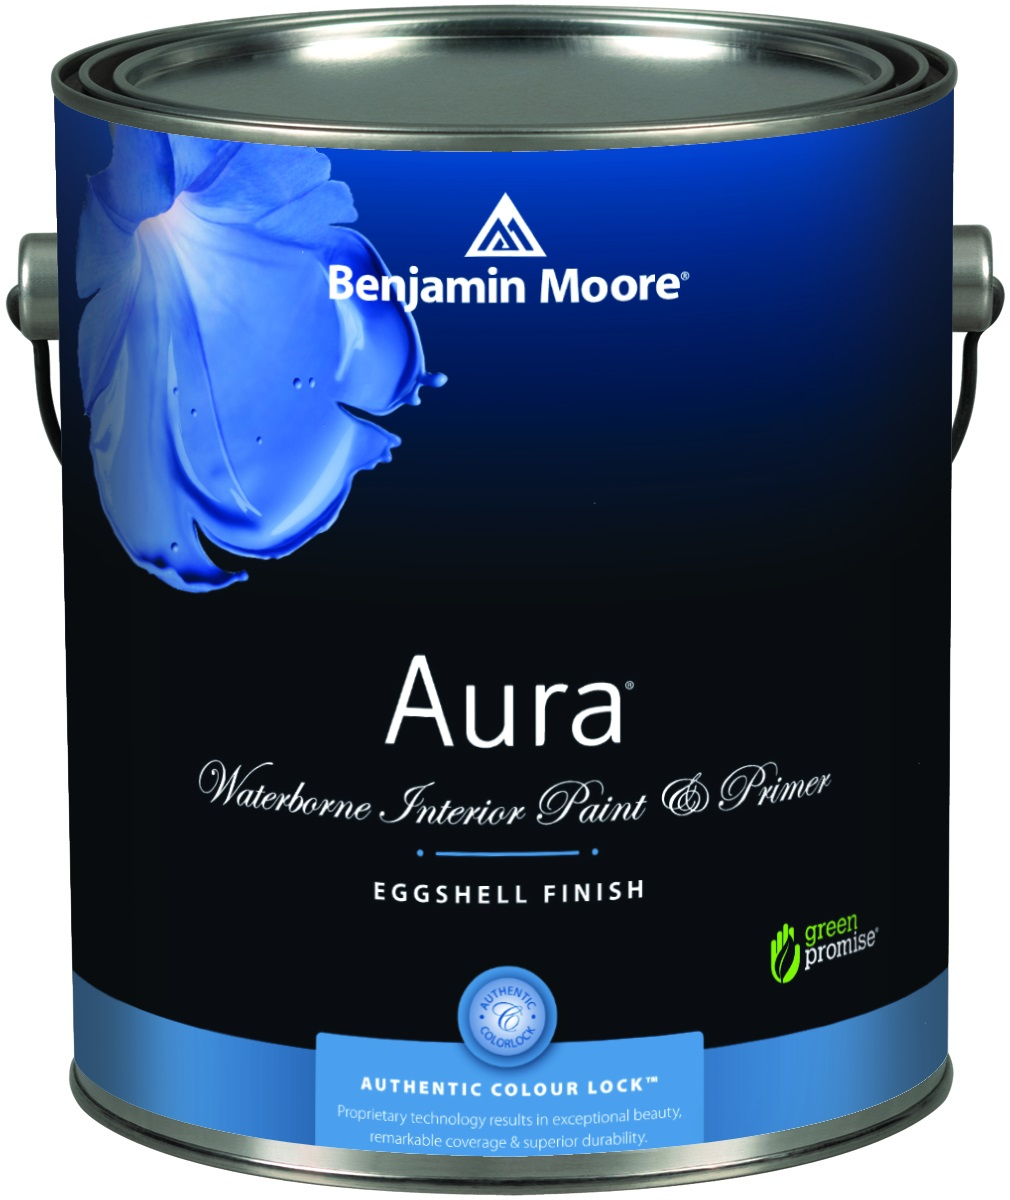 AURA®WATERBORNE INTERIOR PAINT - Aura delivers remarkable durability and offers the most advanced way to bring colour to life. Using our exclusive Colour Lock™ technology, Aura paint brings you discernibly richer, truer colour. Visibly thicker, Aura paint covers like no other—even in the deepest shades.